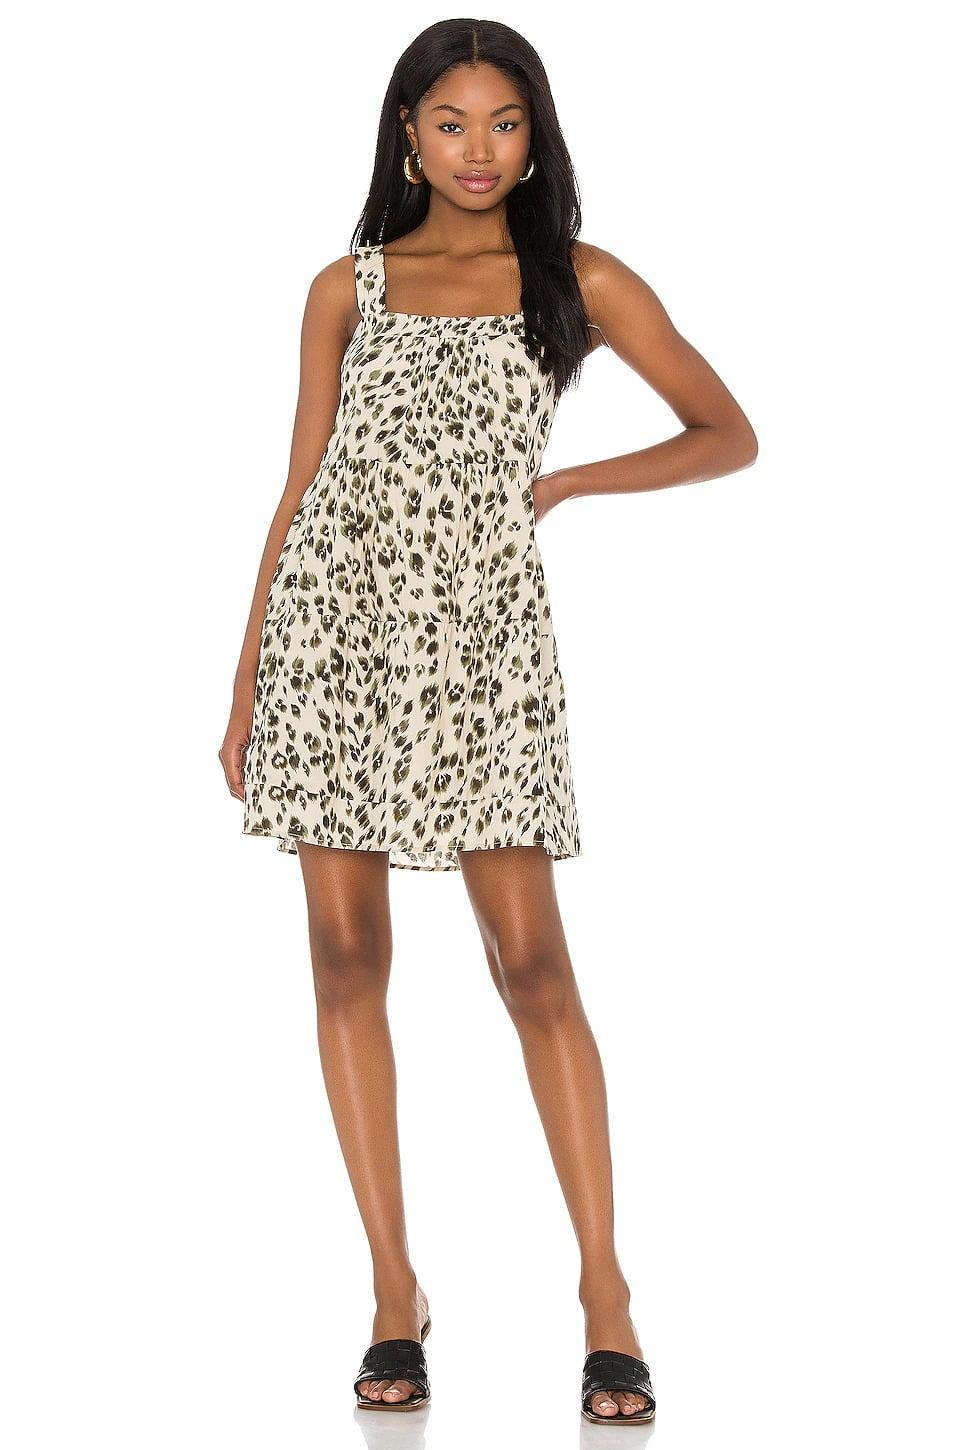 <p>The <span>HEARTLOOM Heartloom Nikka Dress in Khaki</span> ($72, originally $99) us a gorgeous find that you can take from day to night. The flowy floral design will never go out of style. </p>